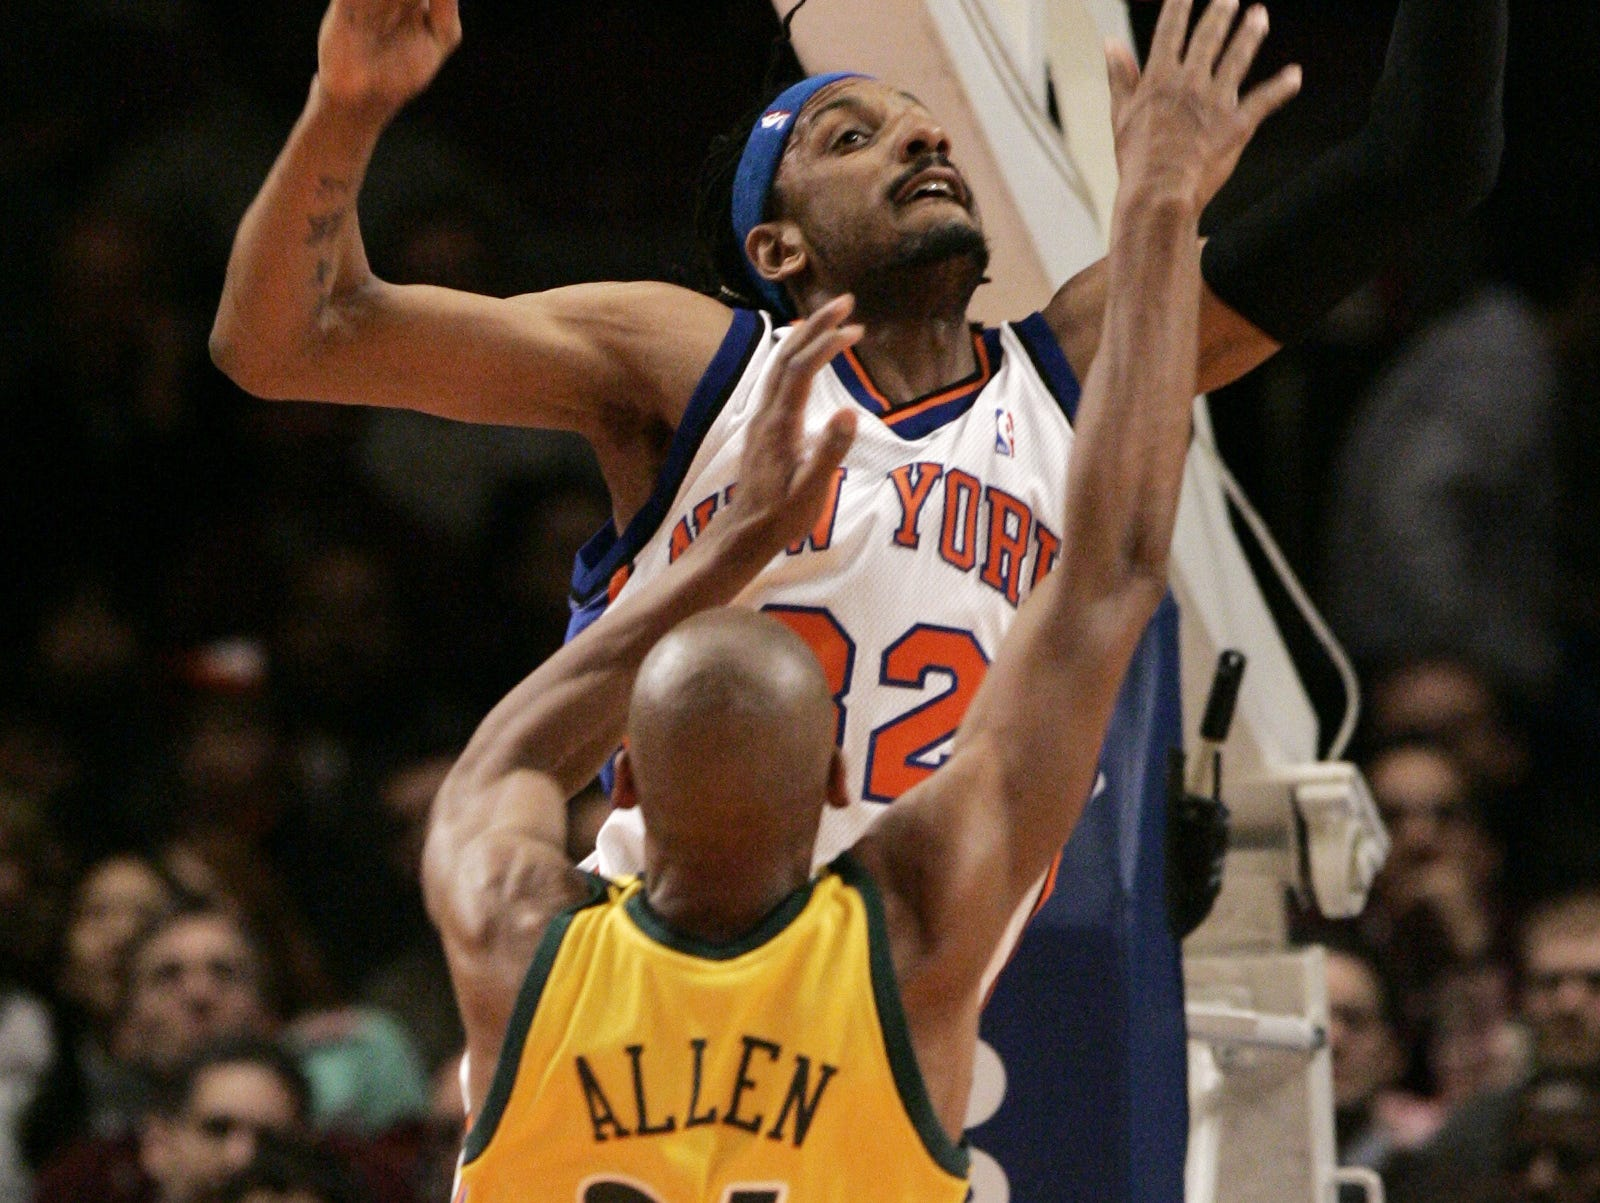 The New York Knicks' Renaldo Balkman (32), a University of South Carolina product, fouls the Seattle SuperSonics' Ray Allen, a South Carolina native, during an NBA basketball game March 6, 2007, at Madison Square Garden in New York.